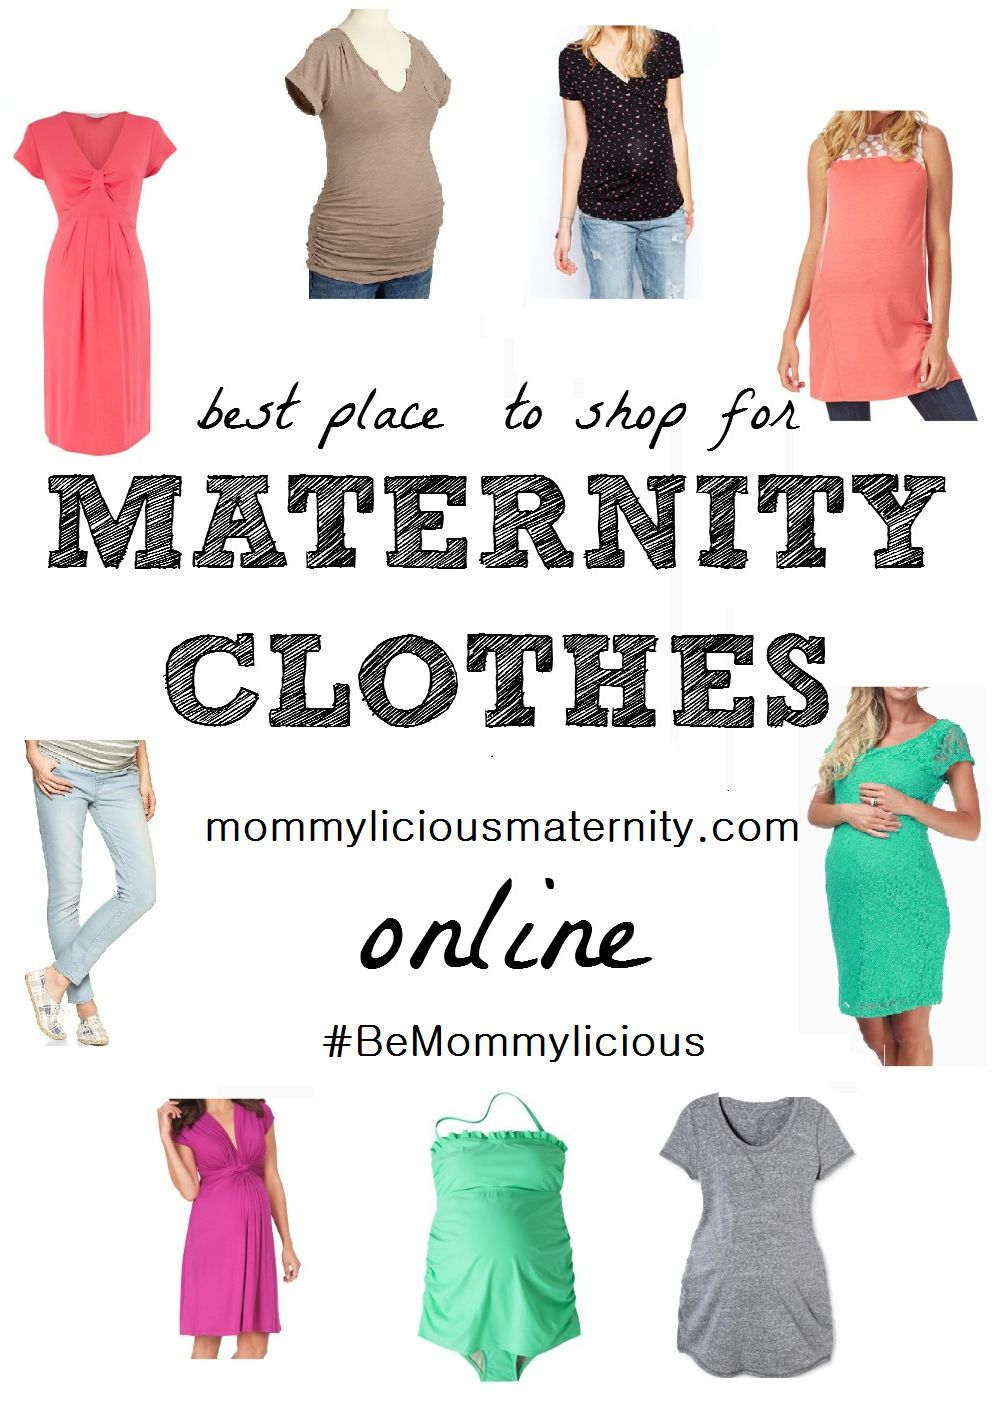 A Buying Guide For Maternity Dresses & Maternity Clothes